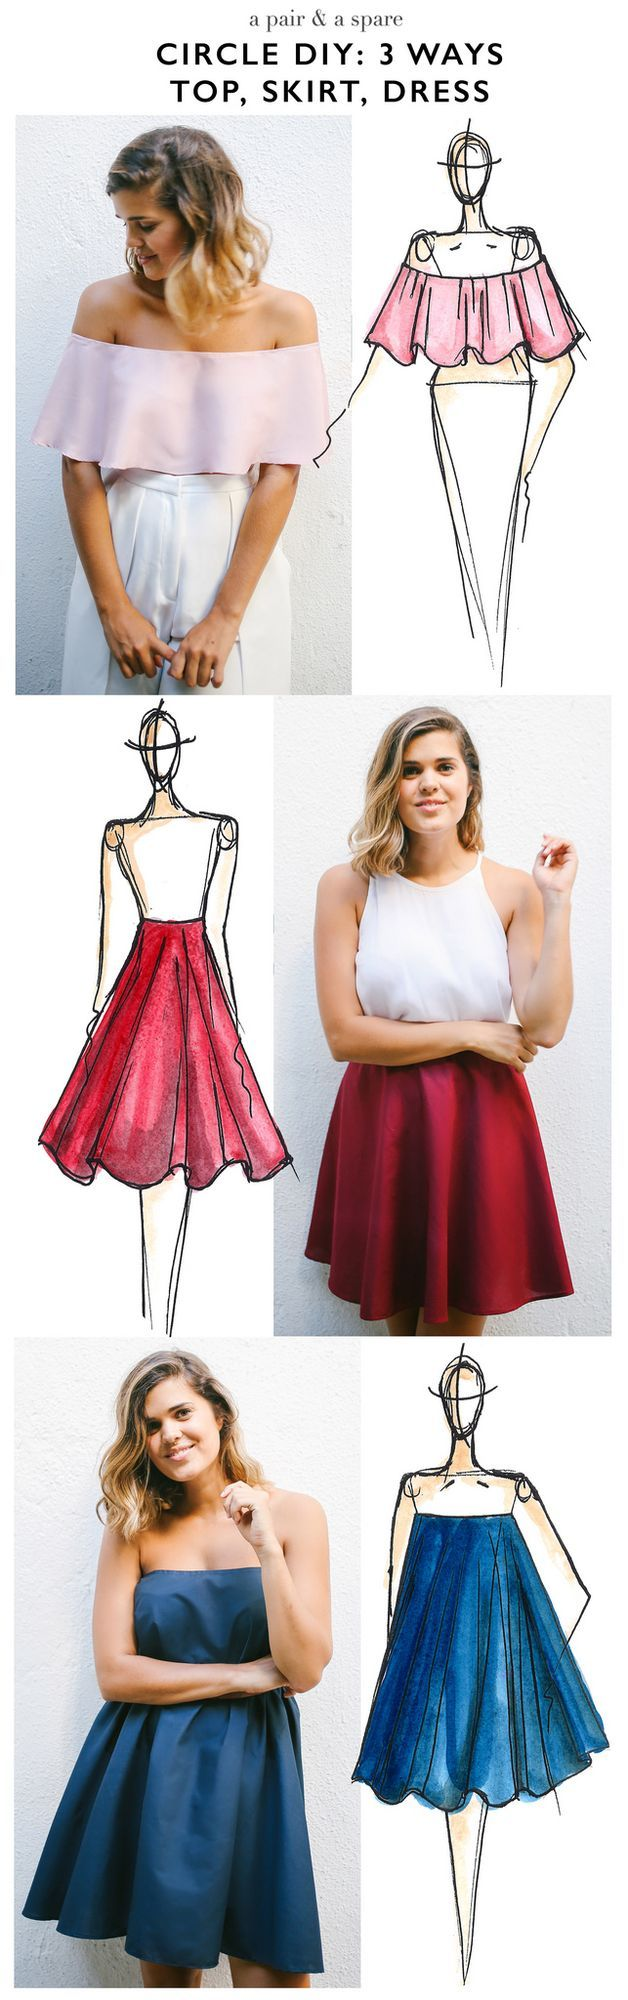 Make this DIY Circle Skirt, Top and Dress (Using the Same Easy Method!)   a pair & a spare   Bloglovin'